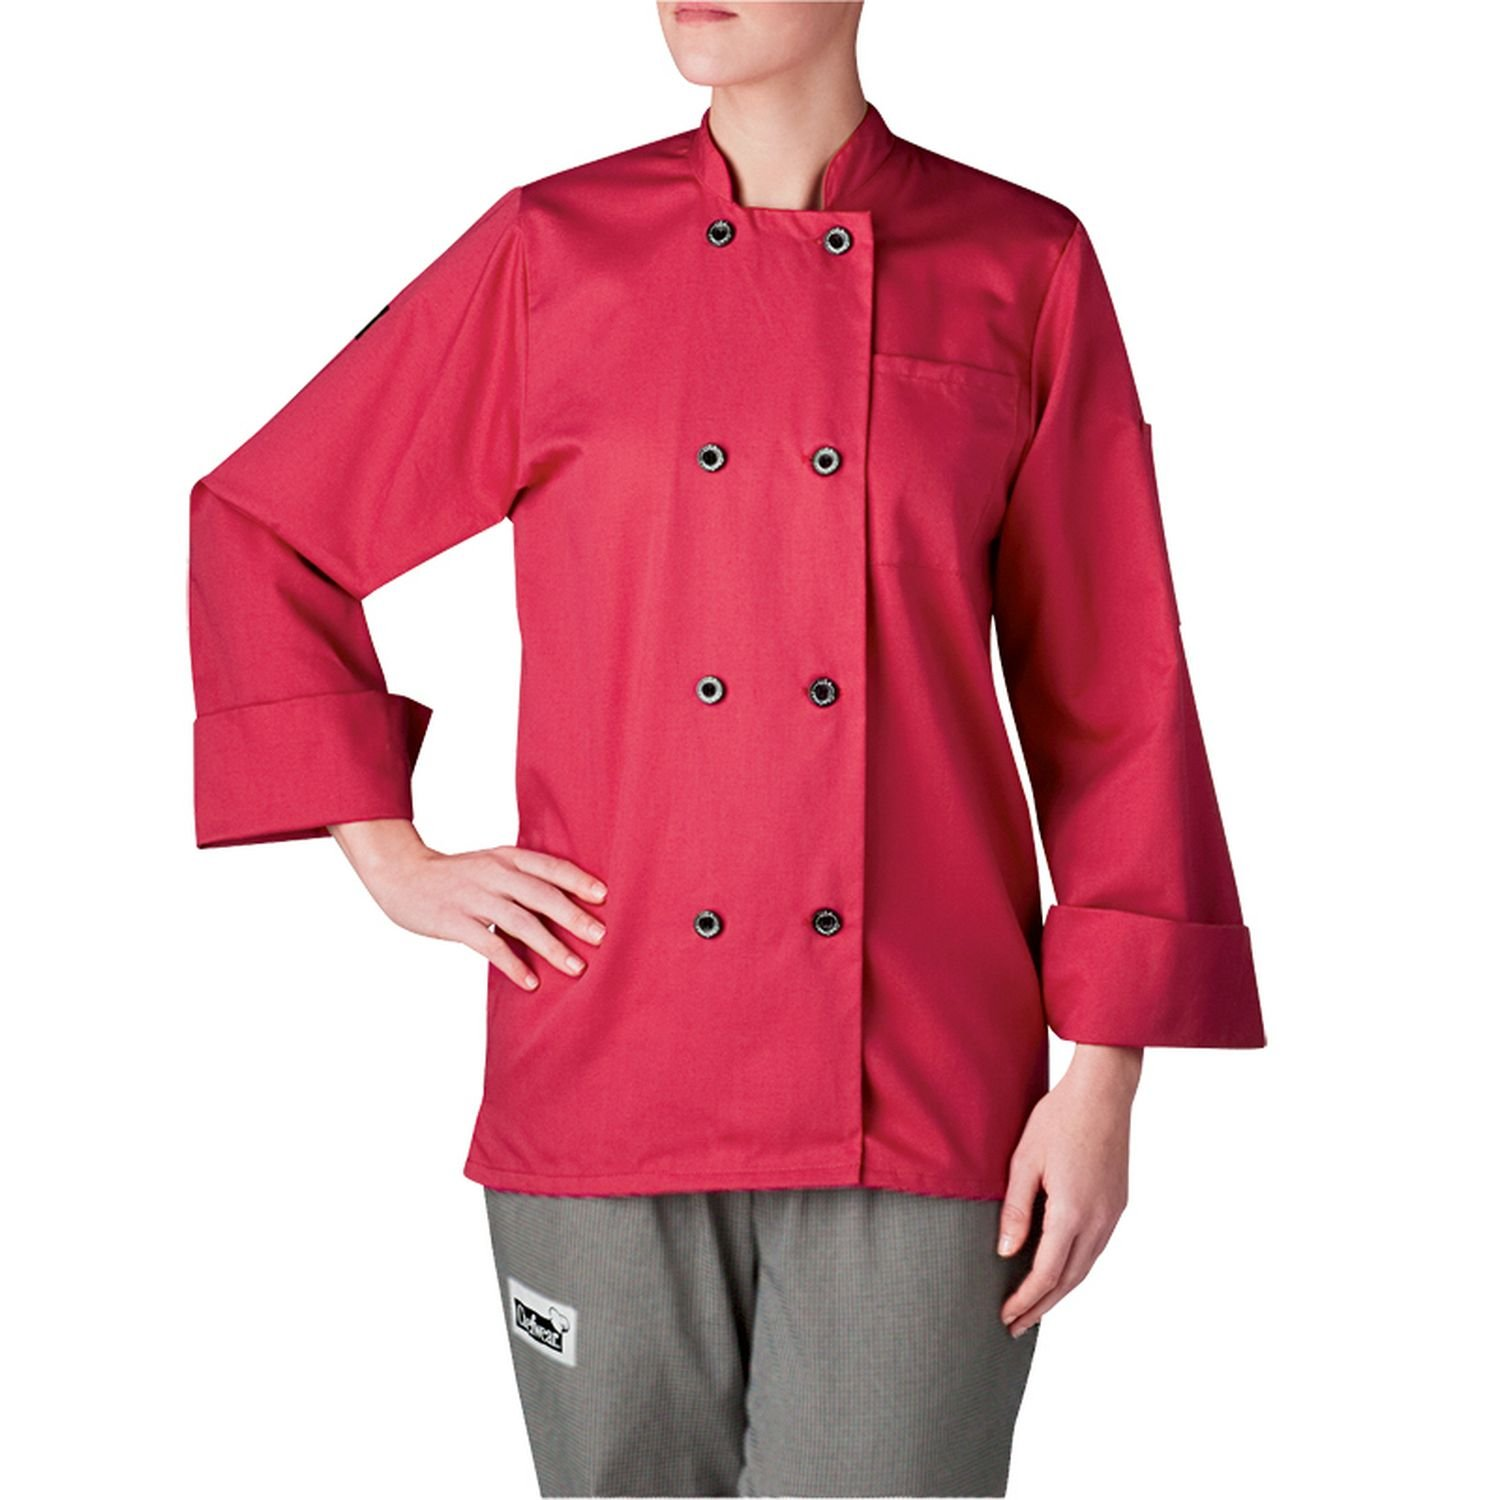 Chefwear Women's Long Sleeve Primary Plastic Button Chef Jacket Hot Pink 3XL by Chefwear